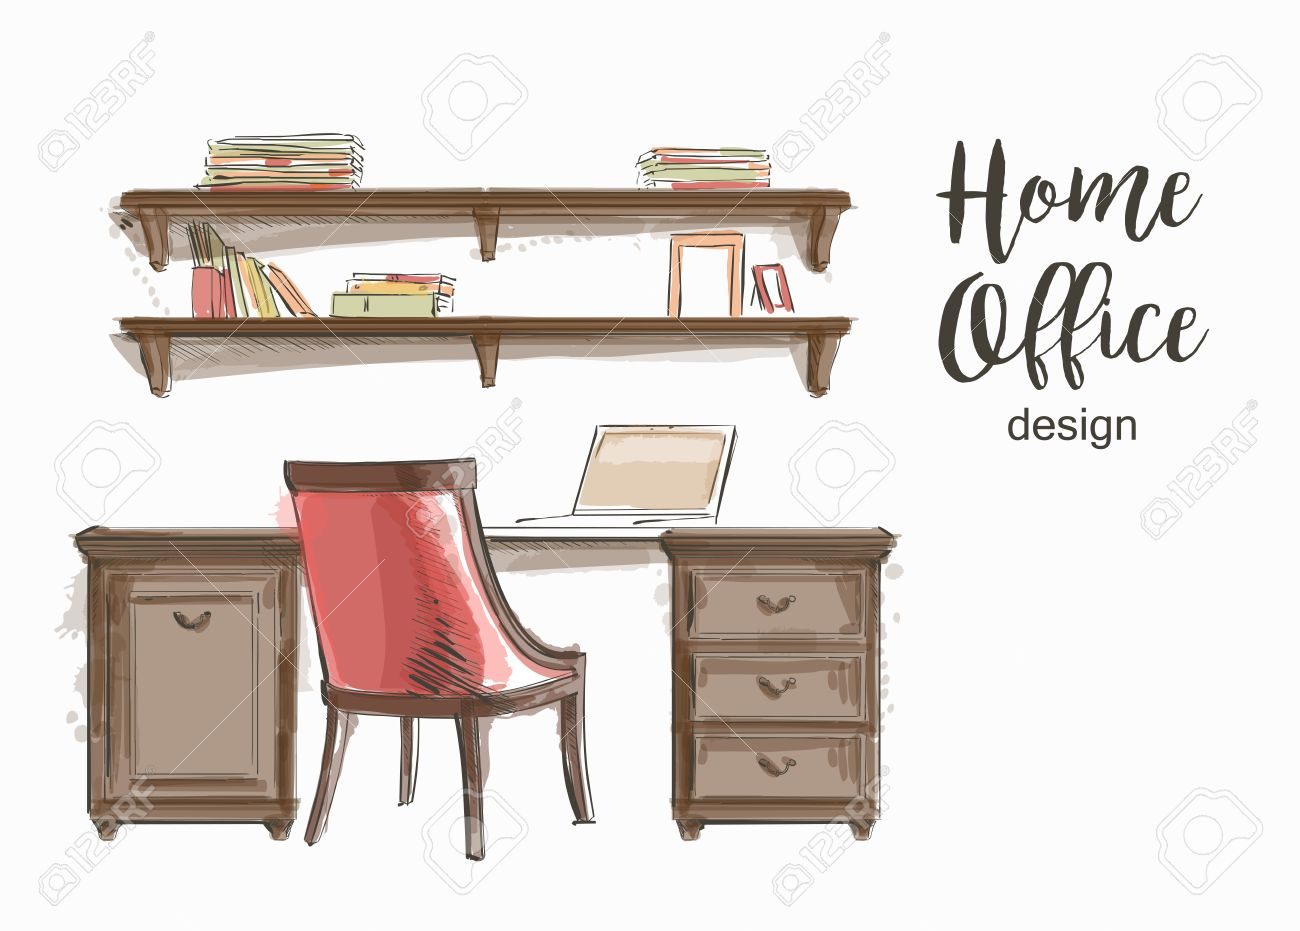 Interior wooden shelves free vector - Set Of Hand Drawn Classic Home Office Interior Work Table Wooden Shelf Chair Vector Sketch Stock